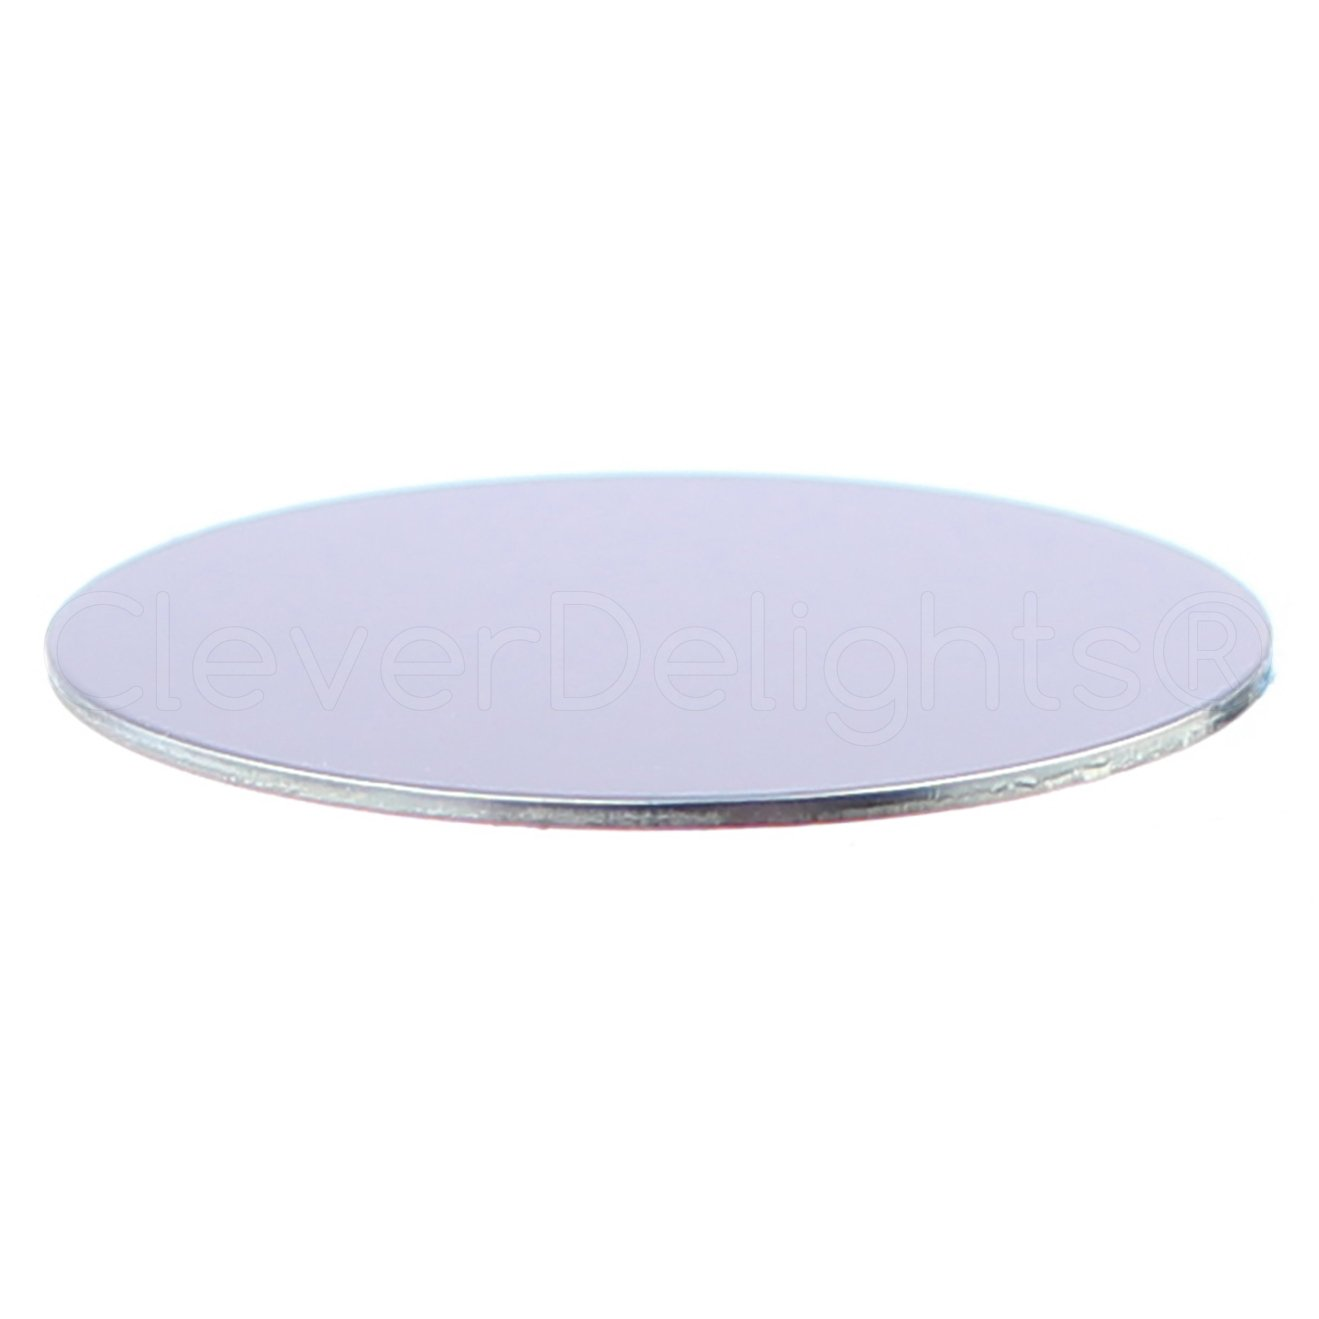 18 Gauge CleverDelights 1.5 Round Aluminum Stamping Blanks Shiny Anodized Finish 50 Pack .039